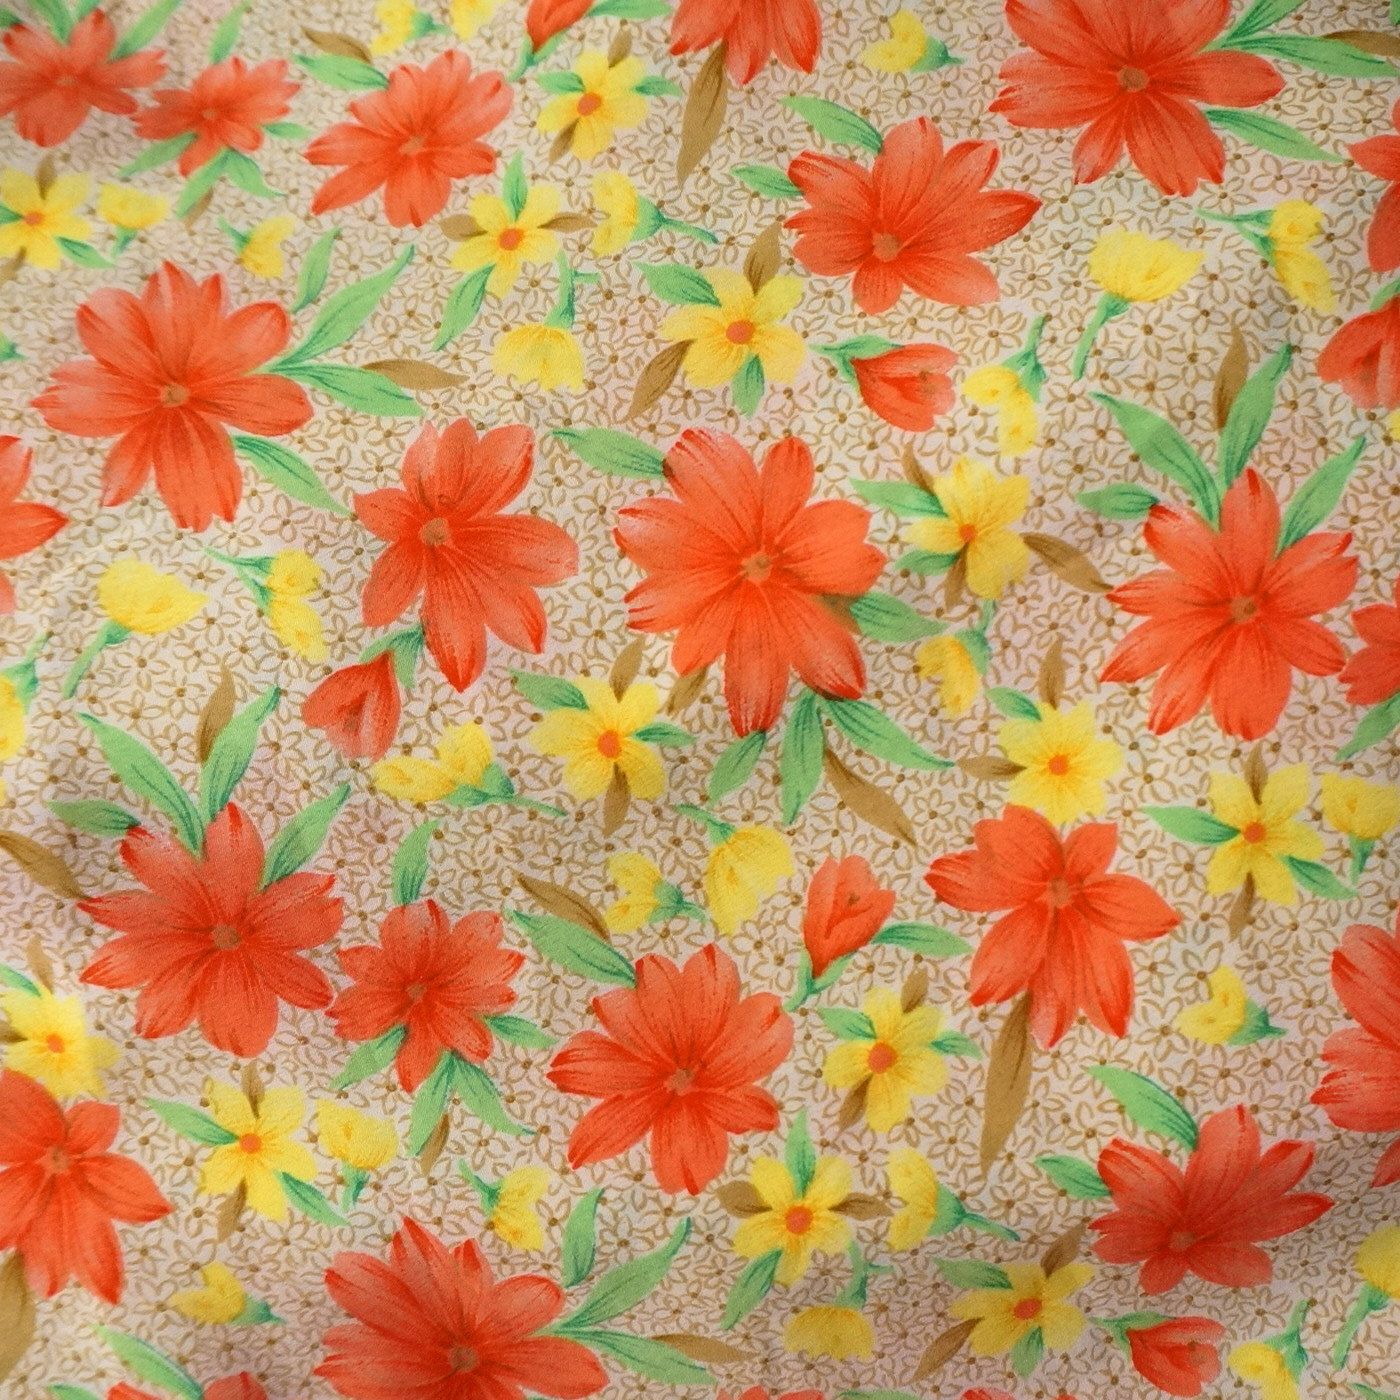 Absolutely outstanding vintage floral bordered crepe georgette fabric in beautiful bright colors. It measures 44 inches wide x 3 yards. The fabric has no flaws or damage and is beautiful to behold. Pics dont do this lovely fabric justice! Convo us for larger quantities than shown.